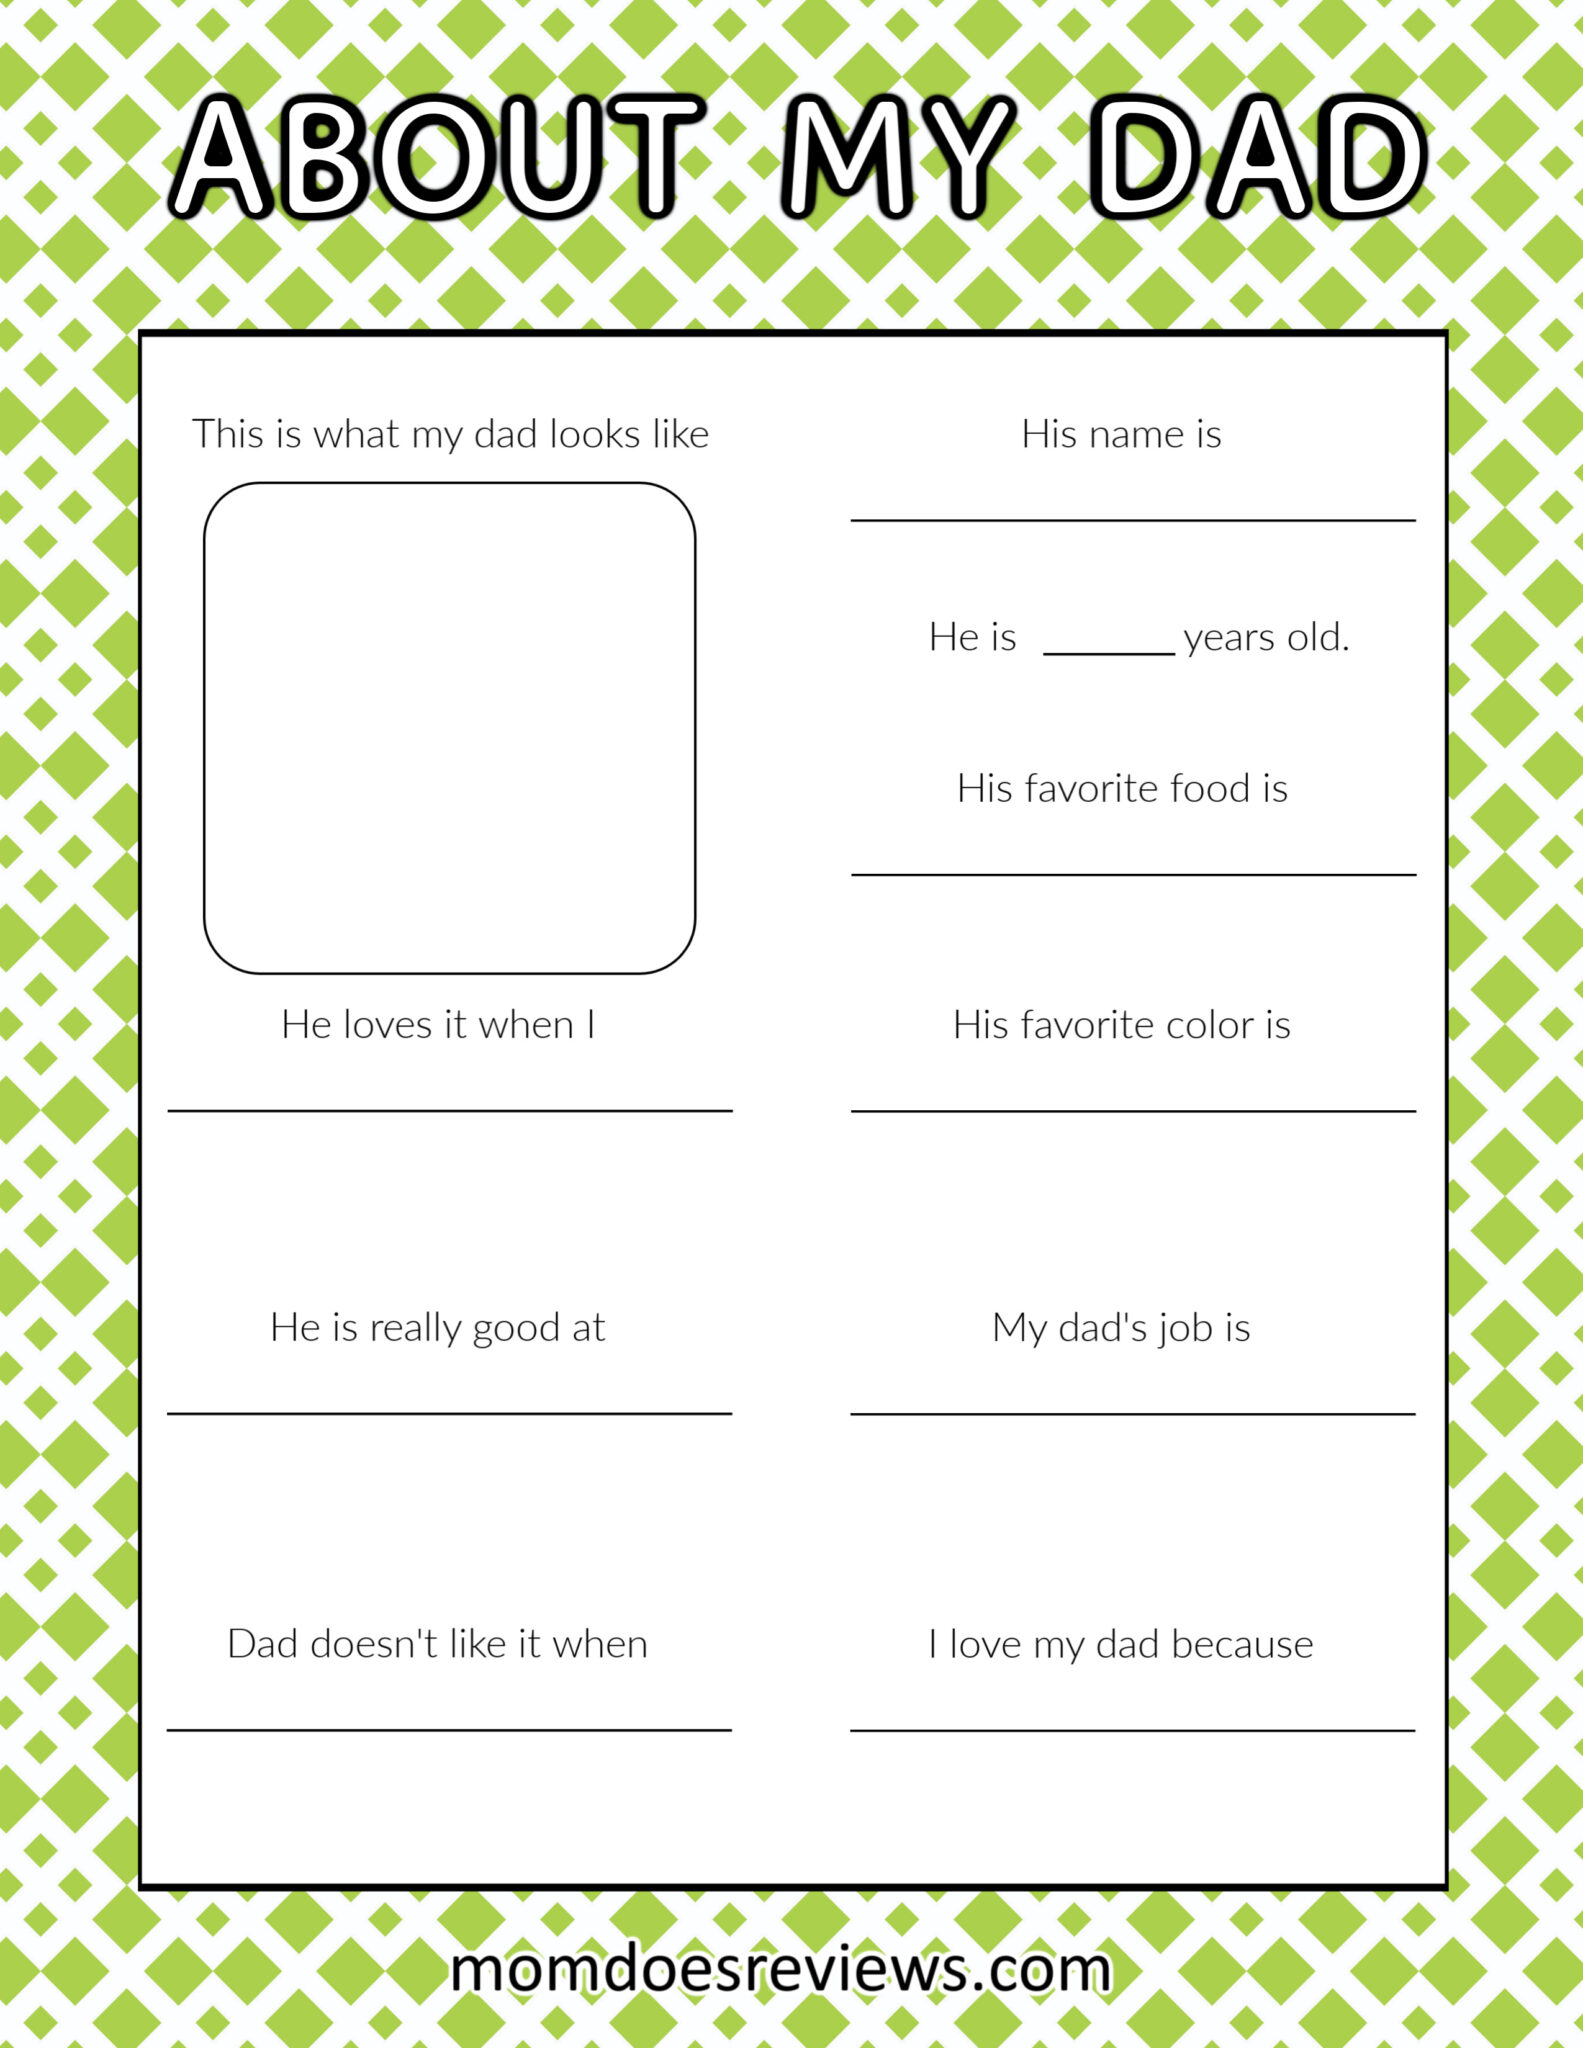 About My Dad- Fun Father's Day Printable #superdadgifts #happyfathersday #printable